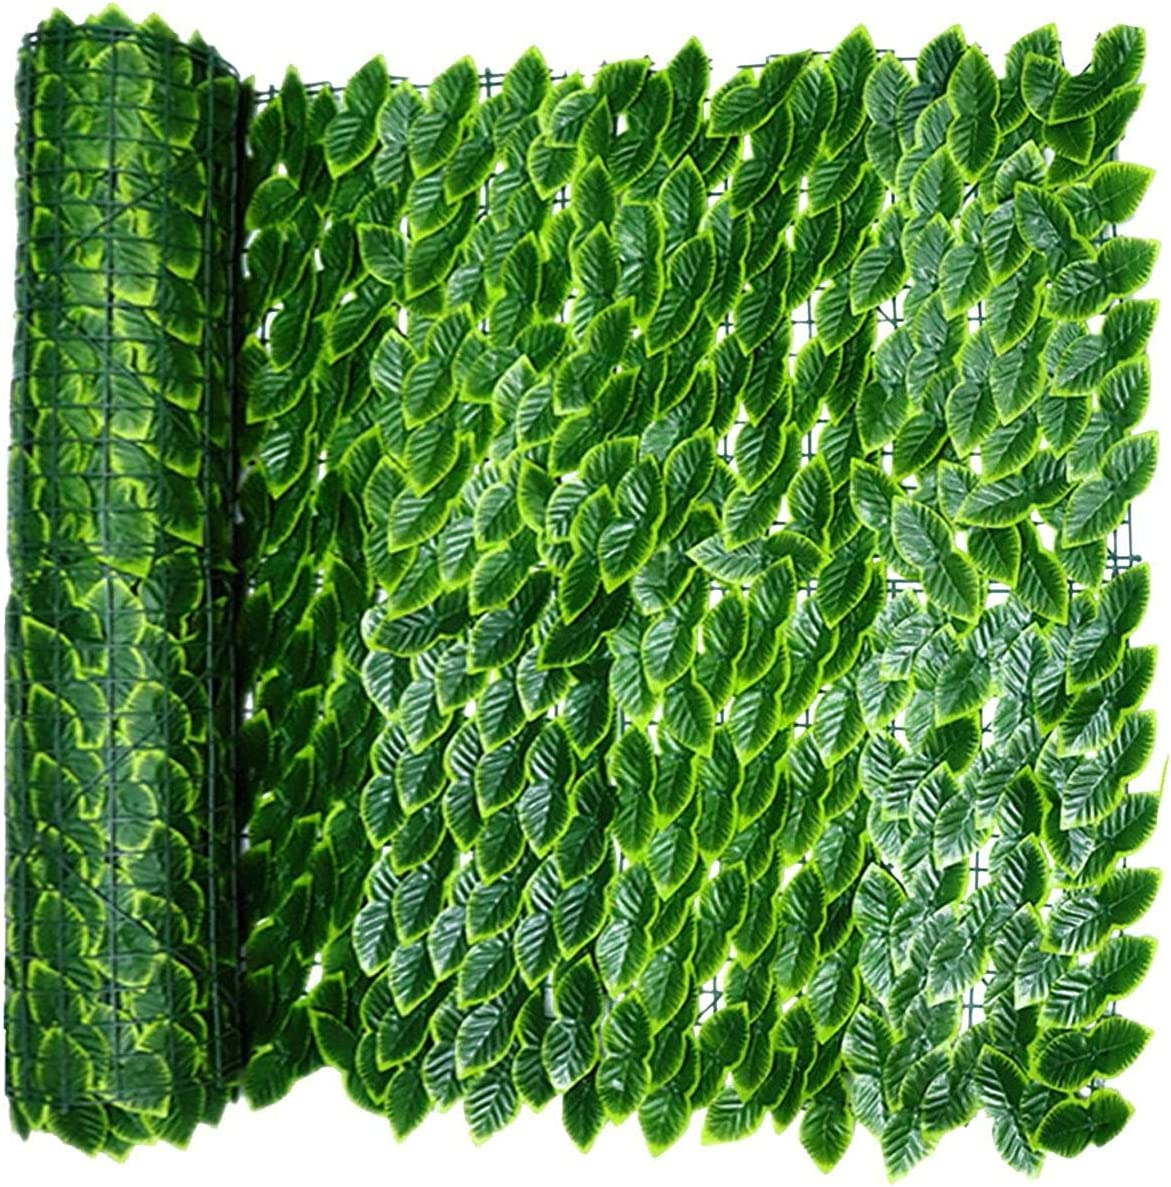 Artificial Ivy Fence Screening Roll Hedges Panels Tr New Department store product